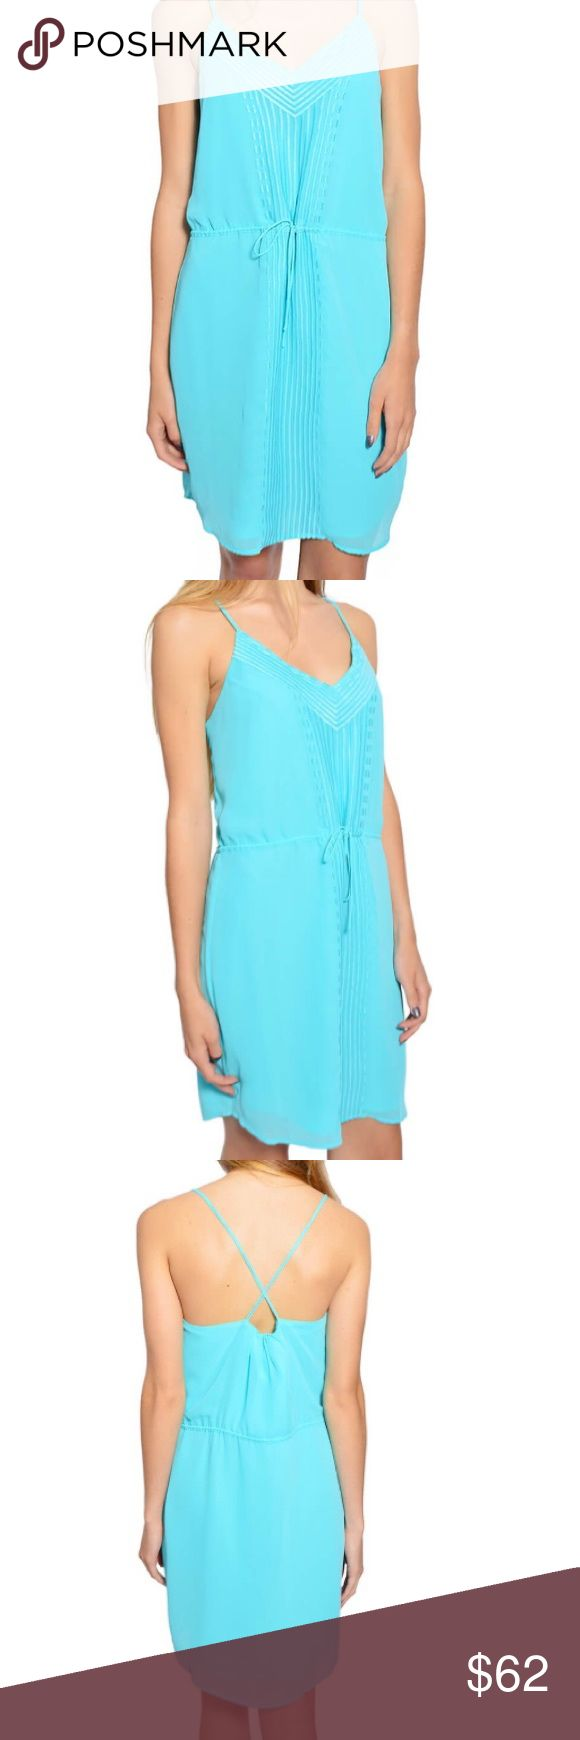 Charlie Jade Aqua V-neck dress! Charlie Jade aqua Vneck dress with straps on back, has a tie on front. Perfect for weddings, bridal showers and any other events! 100% polyester! Charlie Jade Dresses Midi